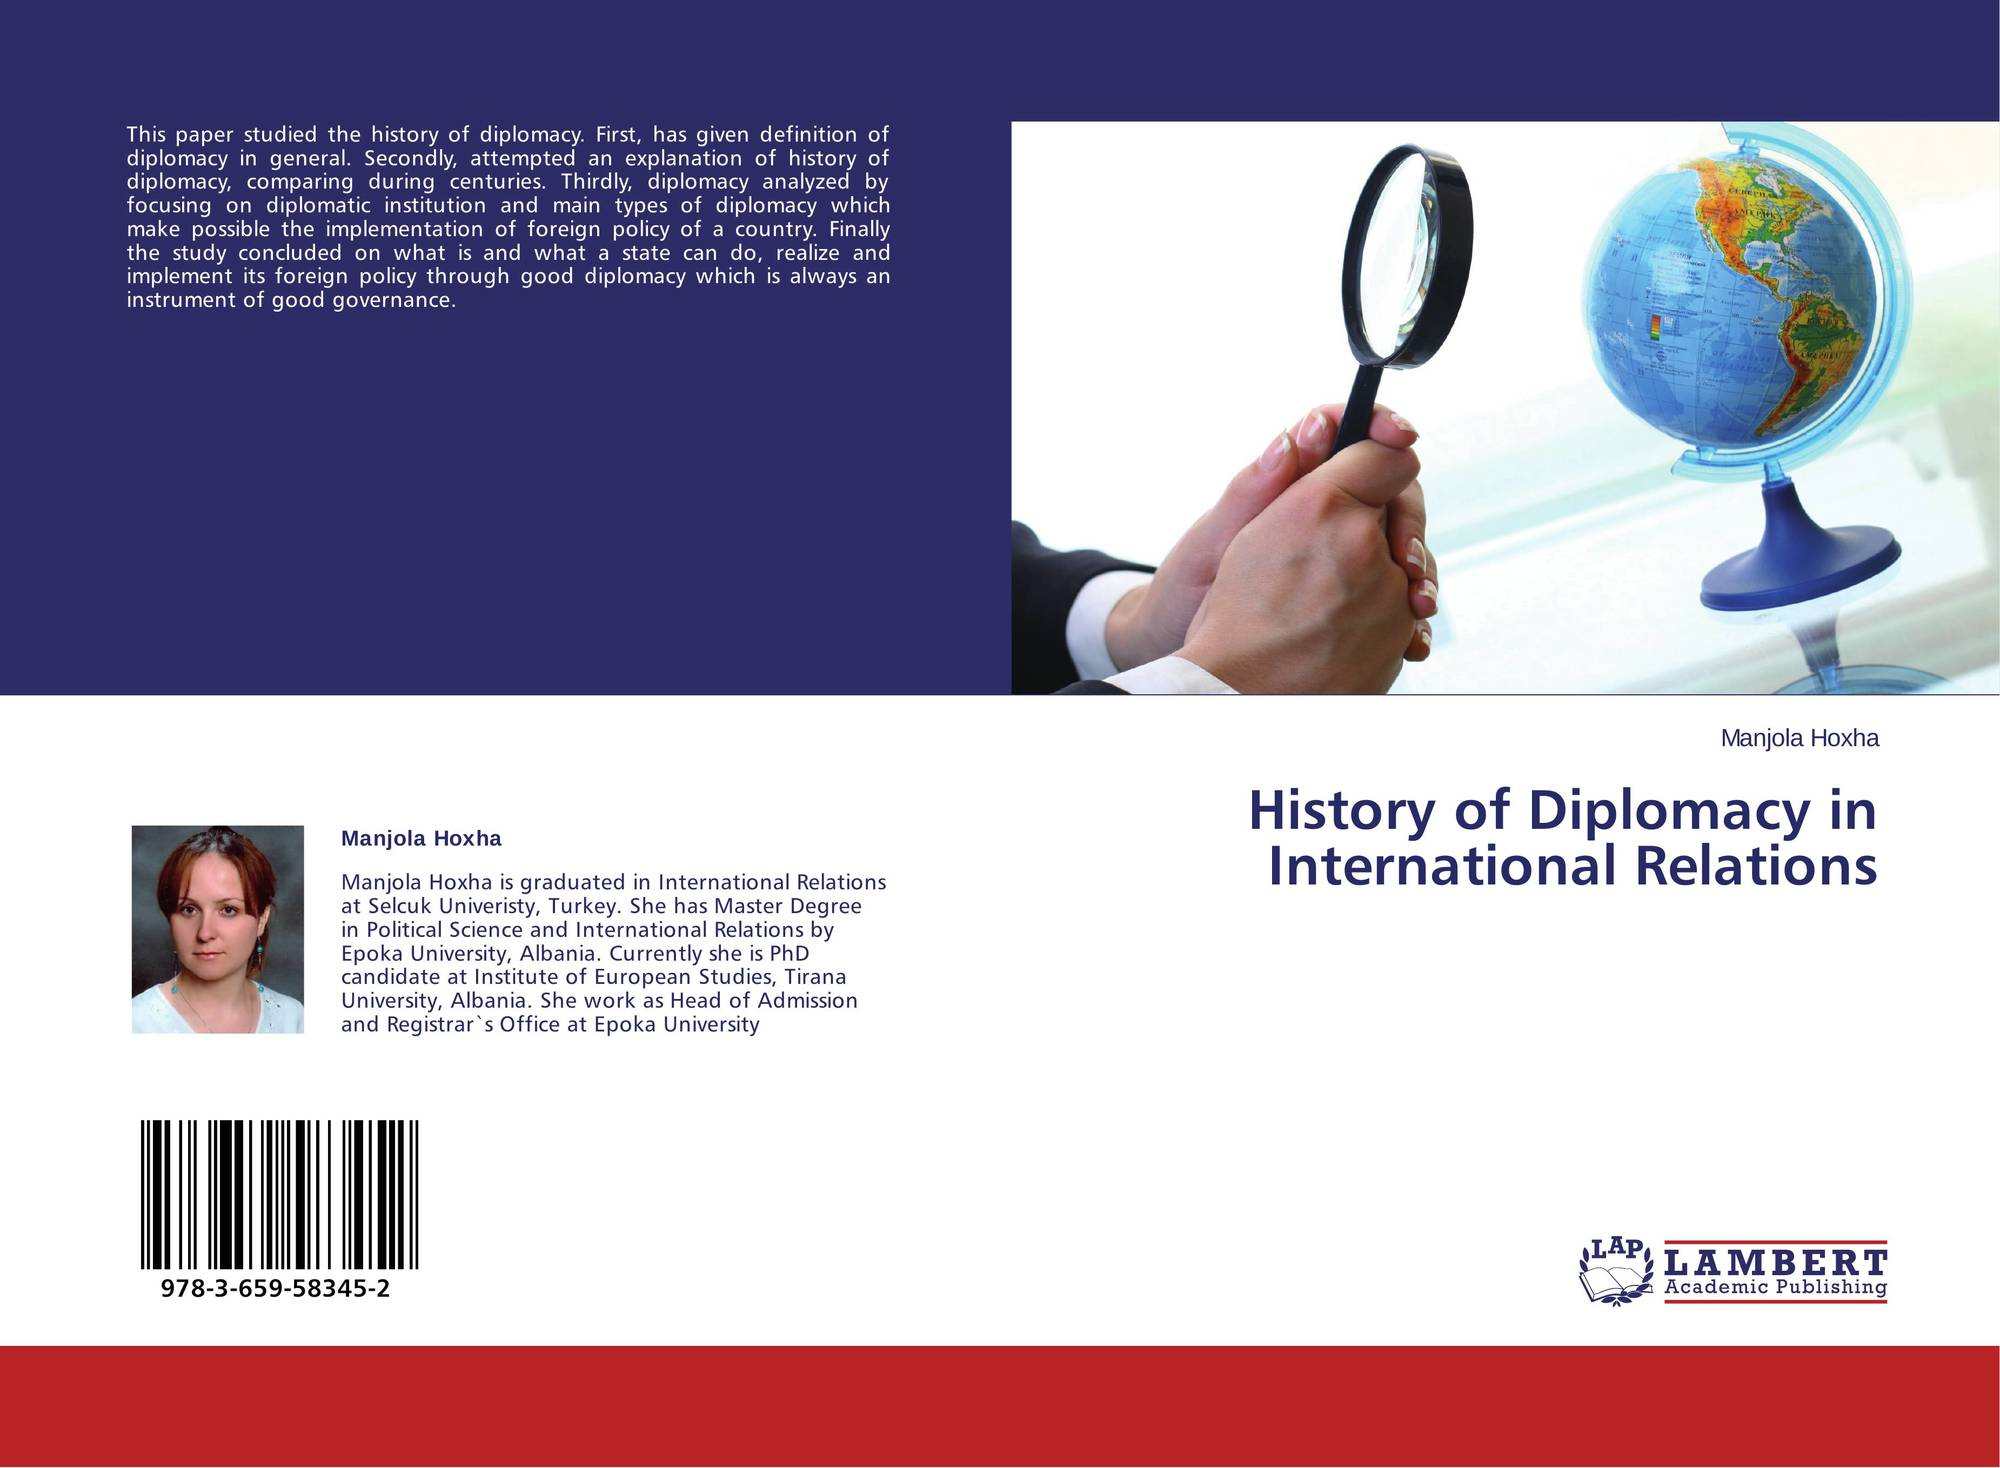 importance of international relations as an academic discipline General overviews studies about sovereignty can be distinguished into classic works that shaped modern politics and contemporary scholarship that discusses sovereignty within the academic discipline of international relations.